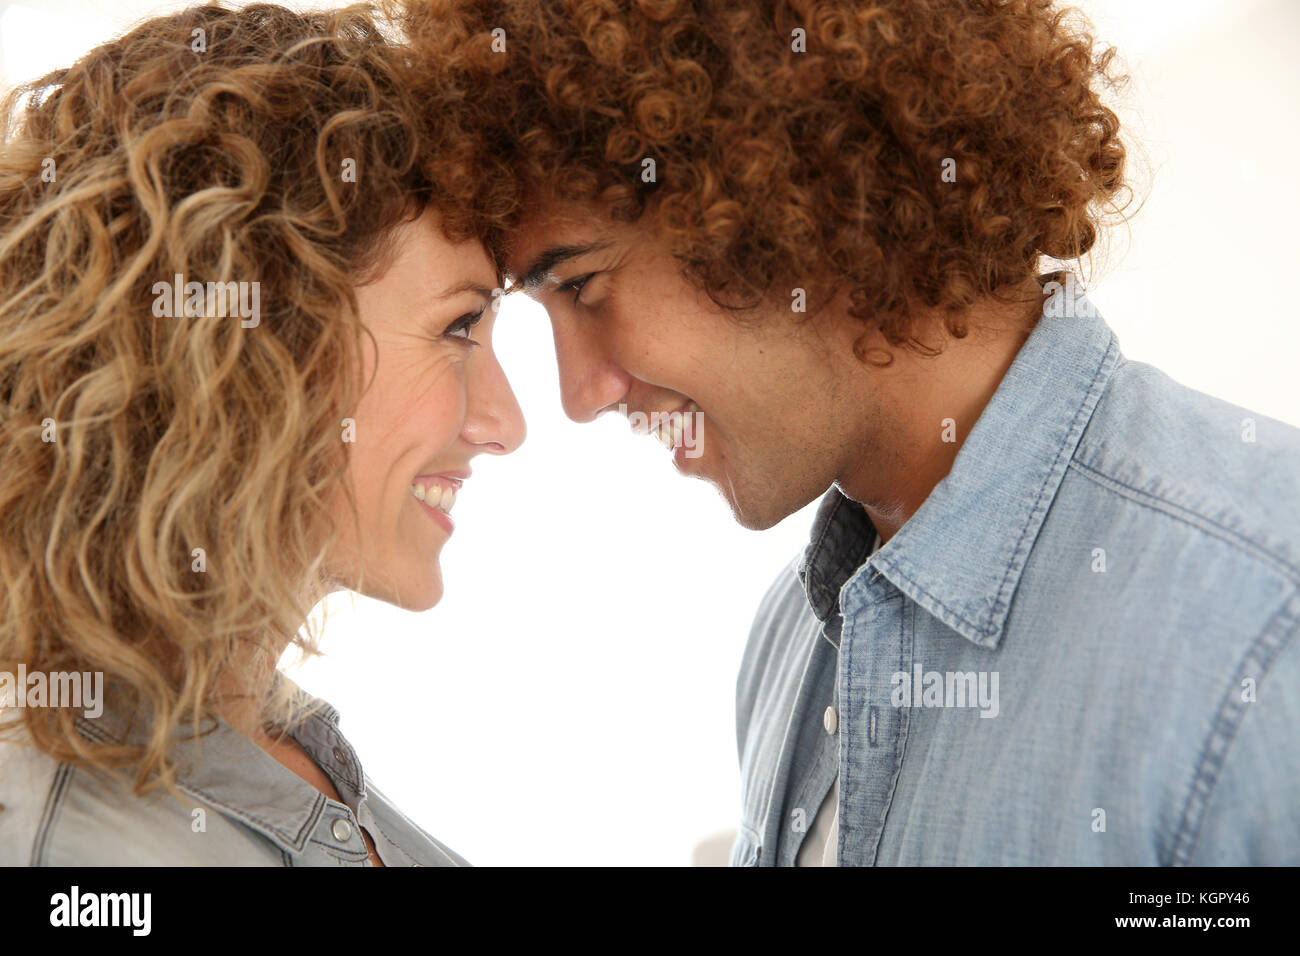 In love couple looking at each other's eyes - Stock Image